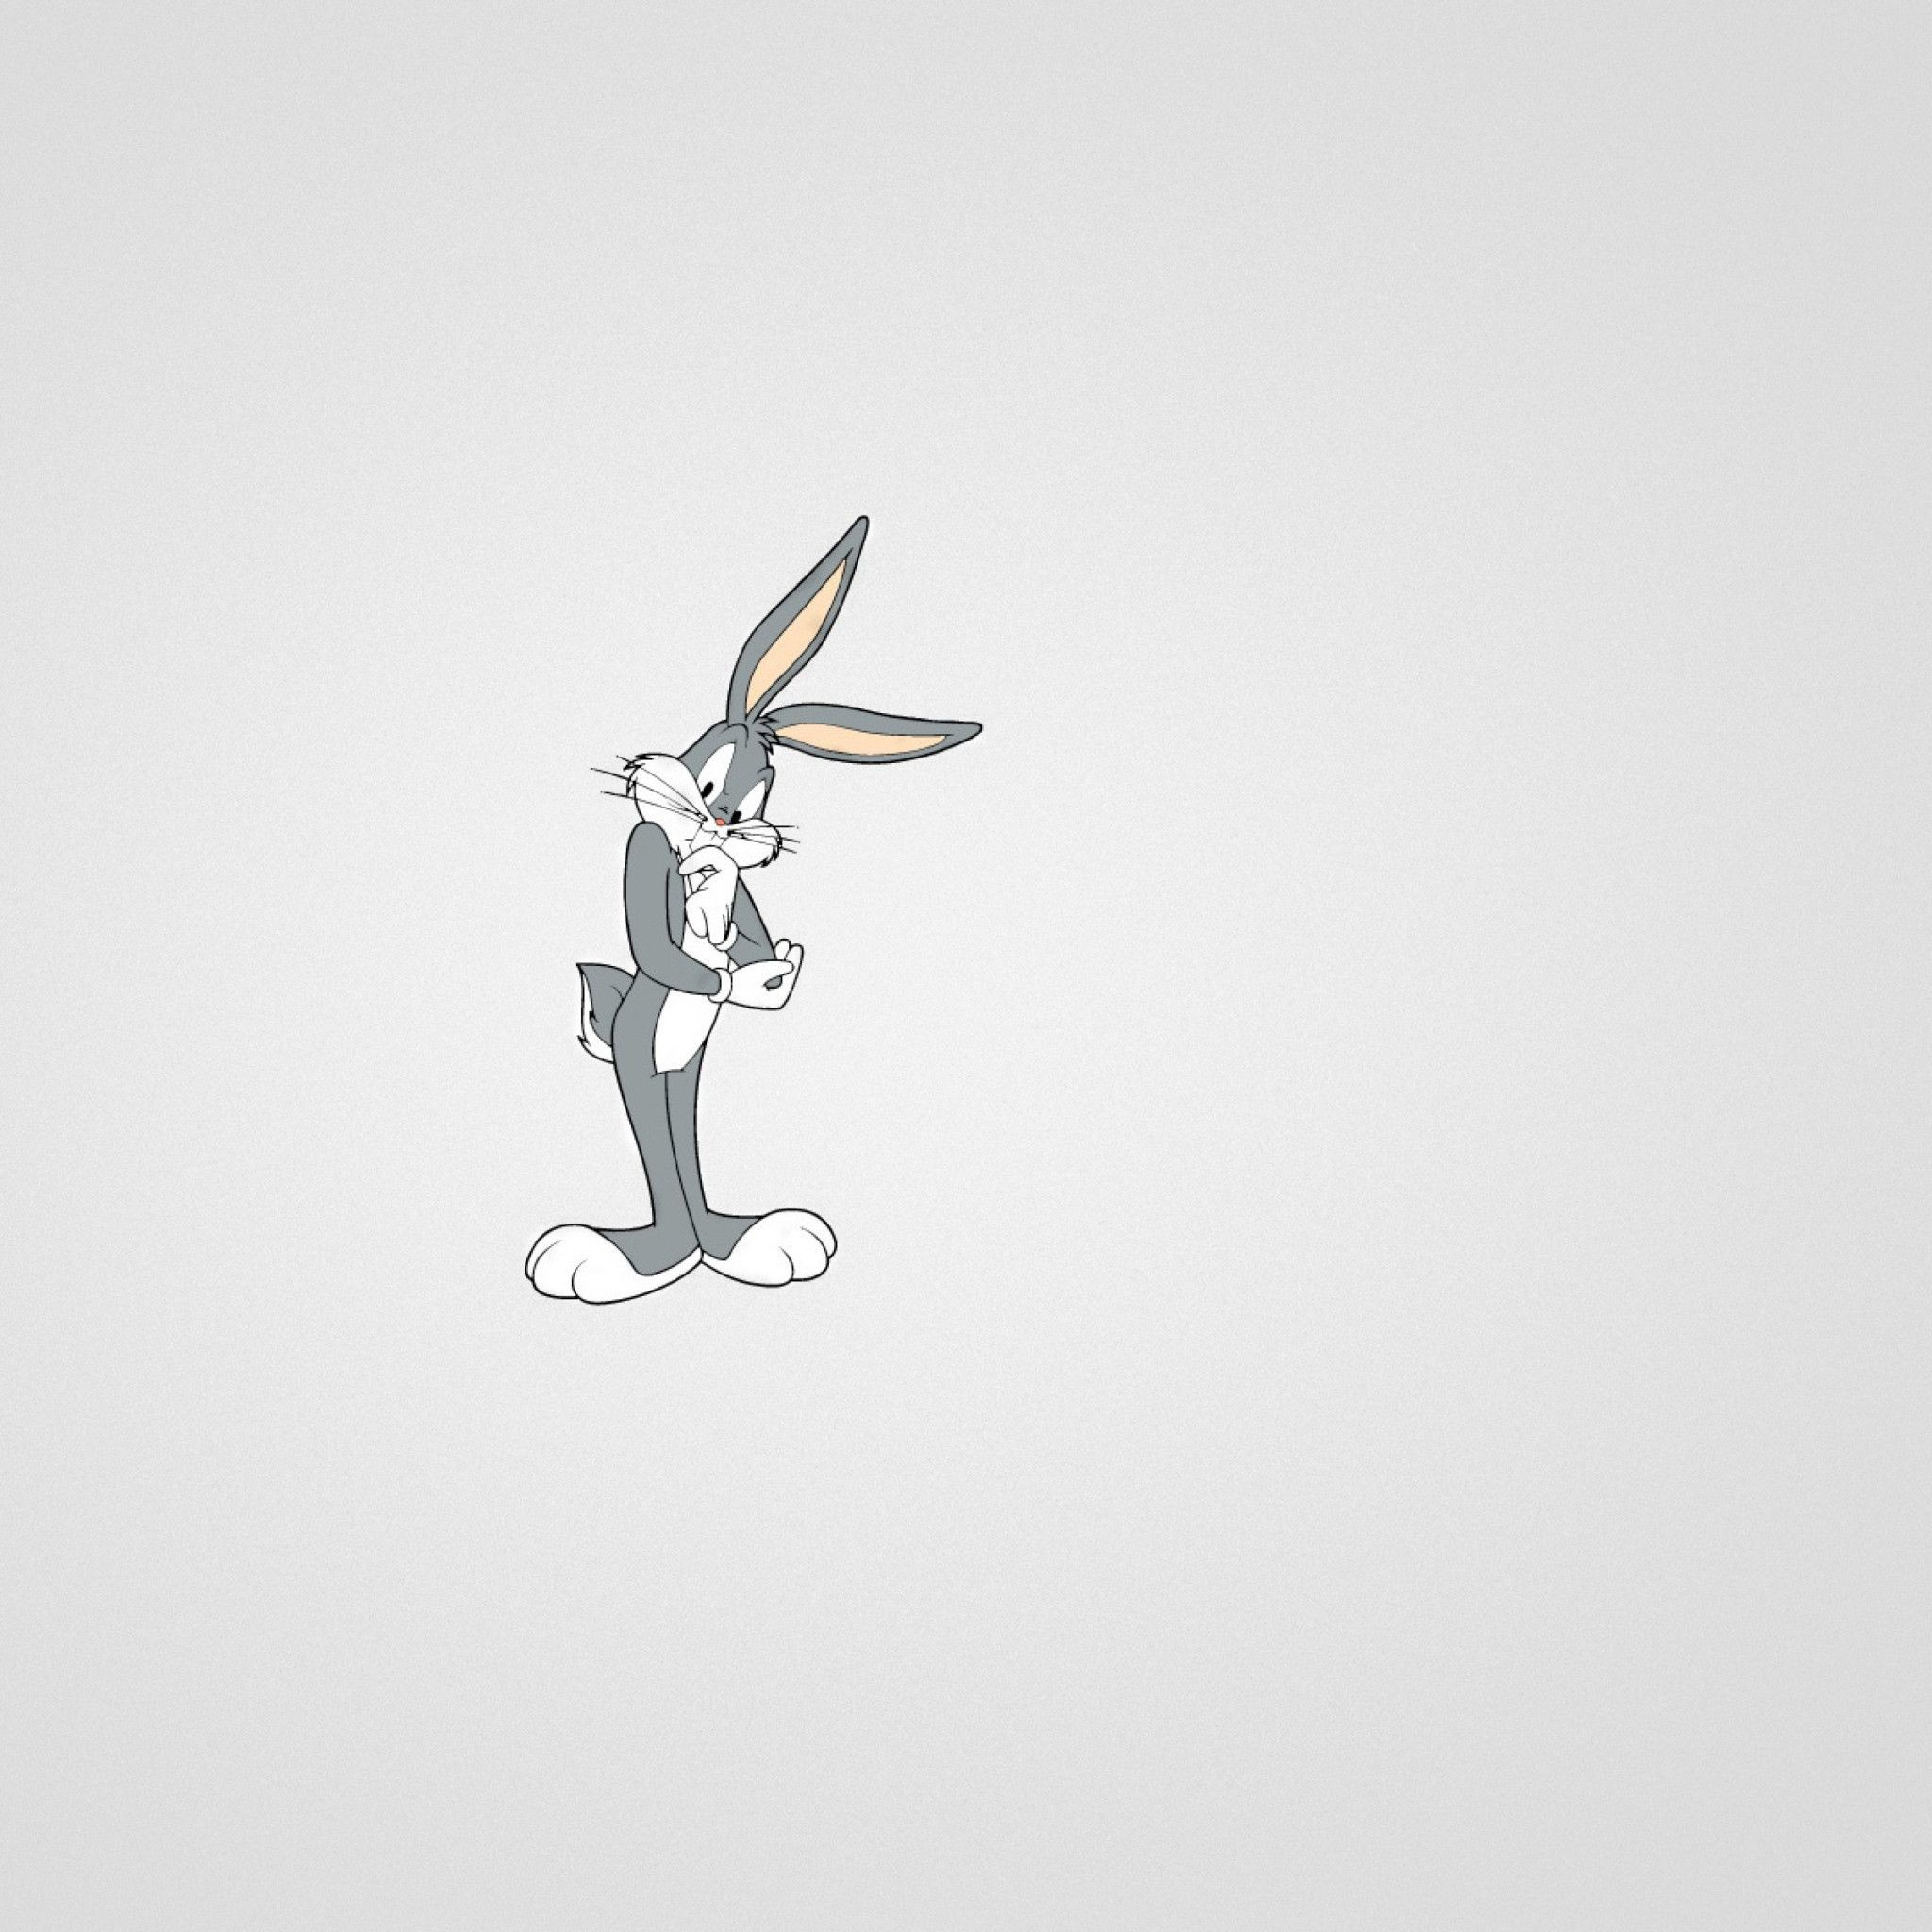 2048x2048 Bugs Bunny Wallpaper Pictures 35